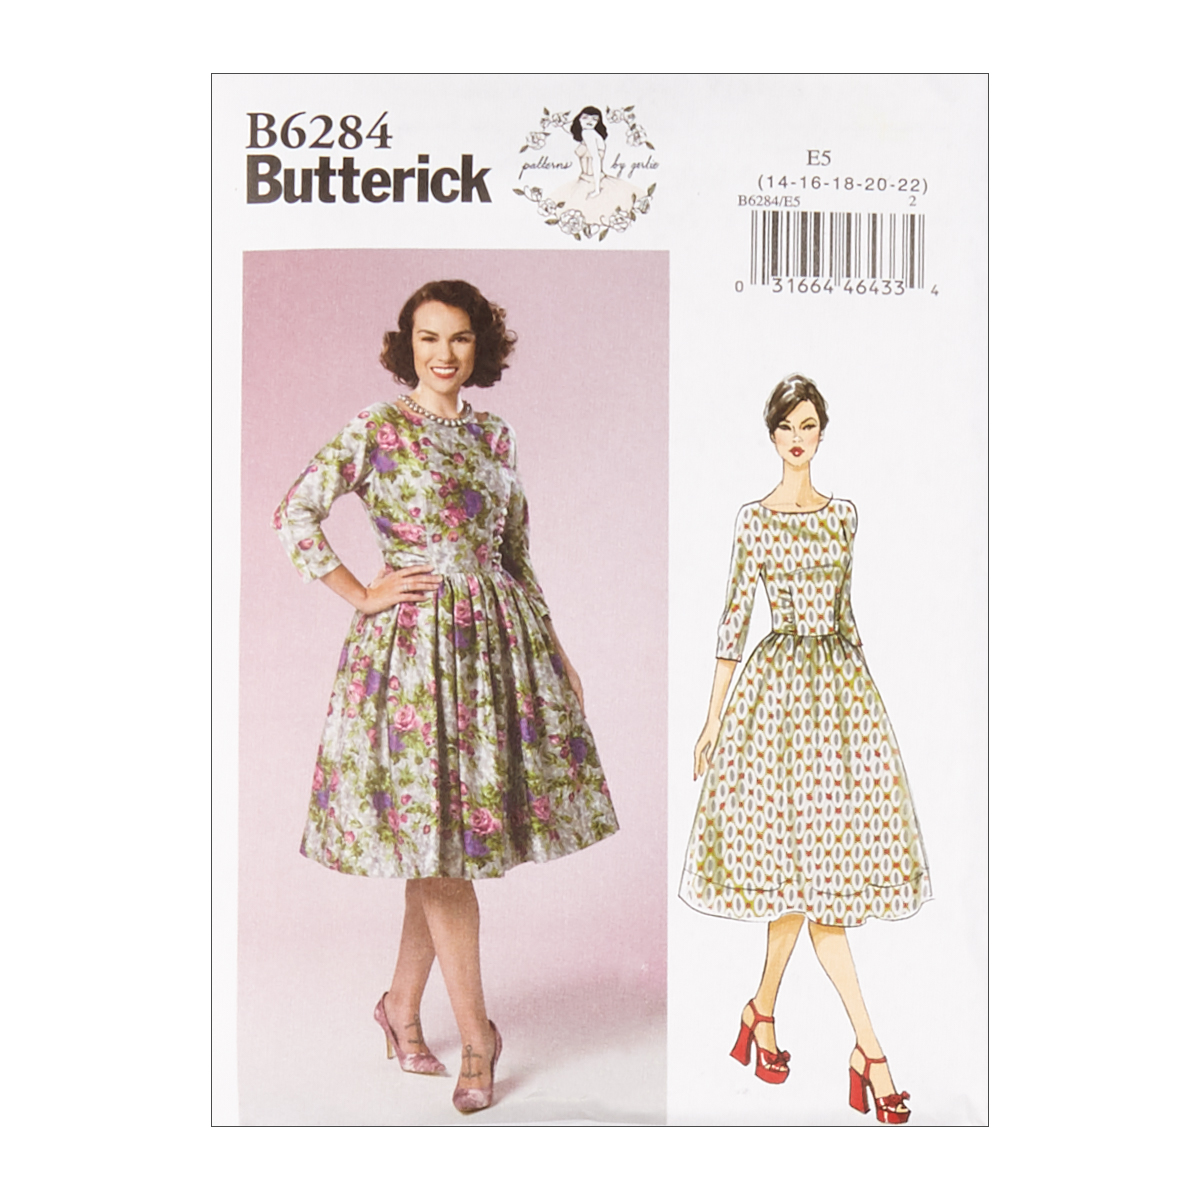 1950s Sewing Patterns | Dresses, Skirts, Tops, Mens Butterick B6284 Patterns by Gertie Misses Dress E5 Sizes 14-22 $11.97 AT vintagedancer.com